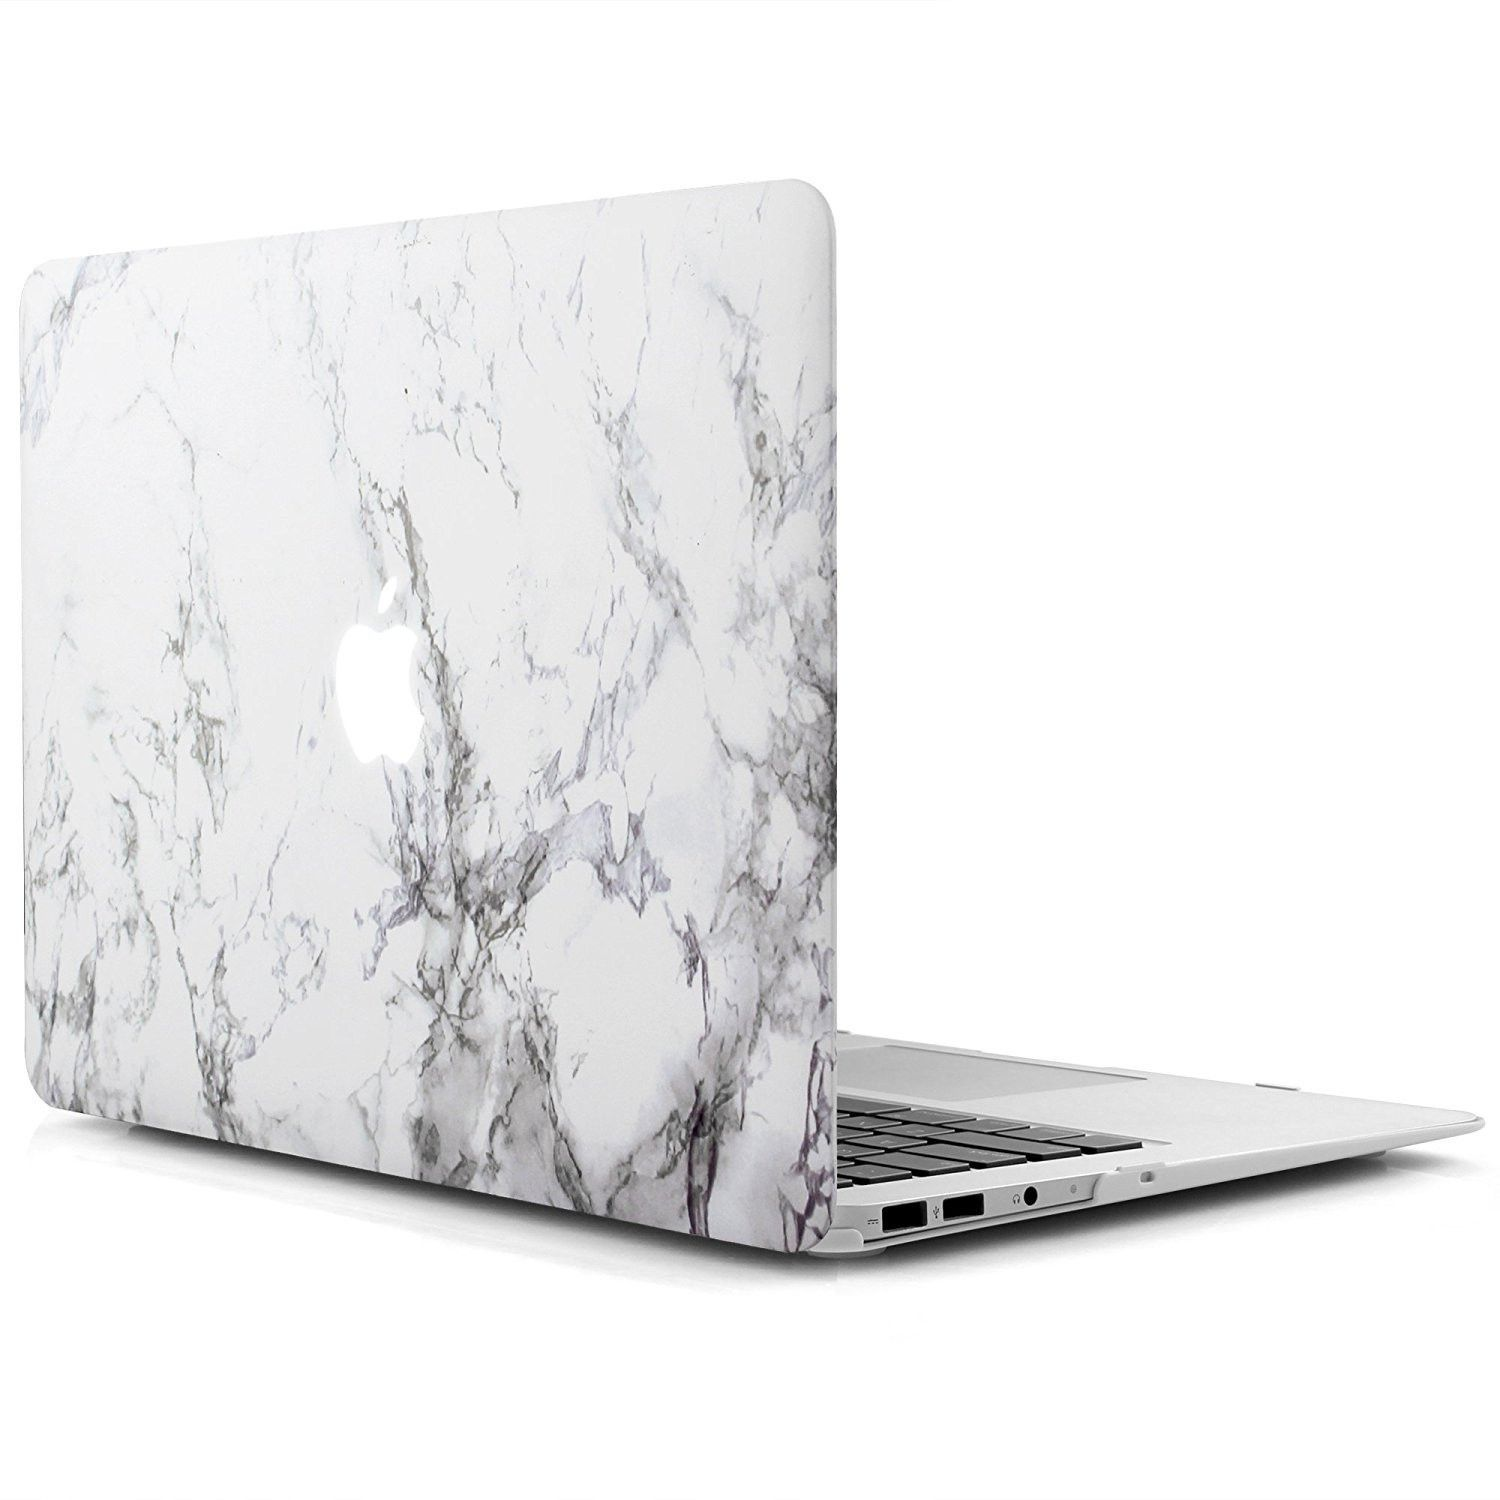 Macbook 13 inch PRO / AIR sleeve, macbook case cover